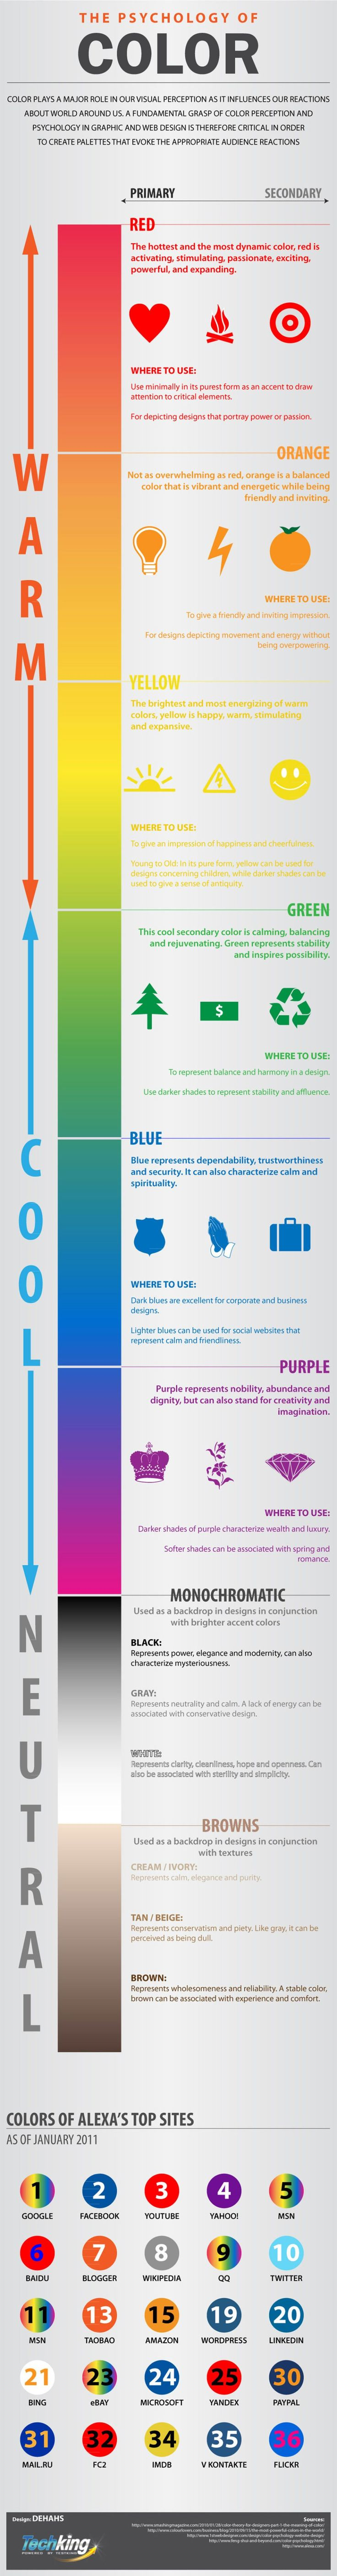 The Psychology of Colour The Psychology of Colour | Infographic